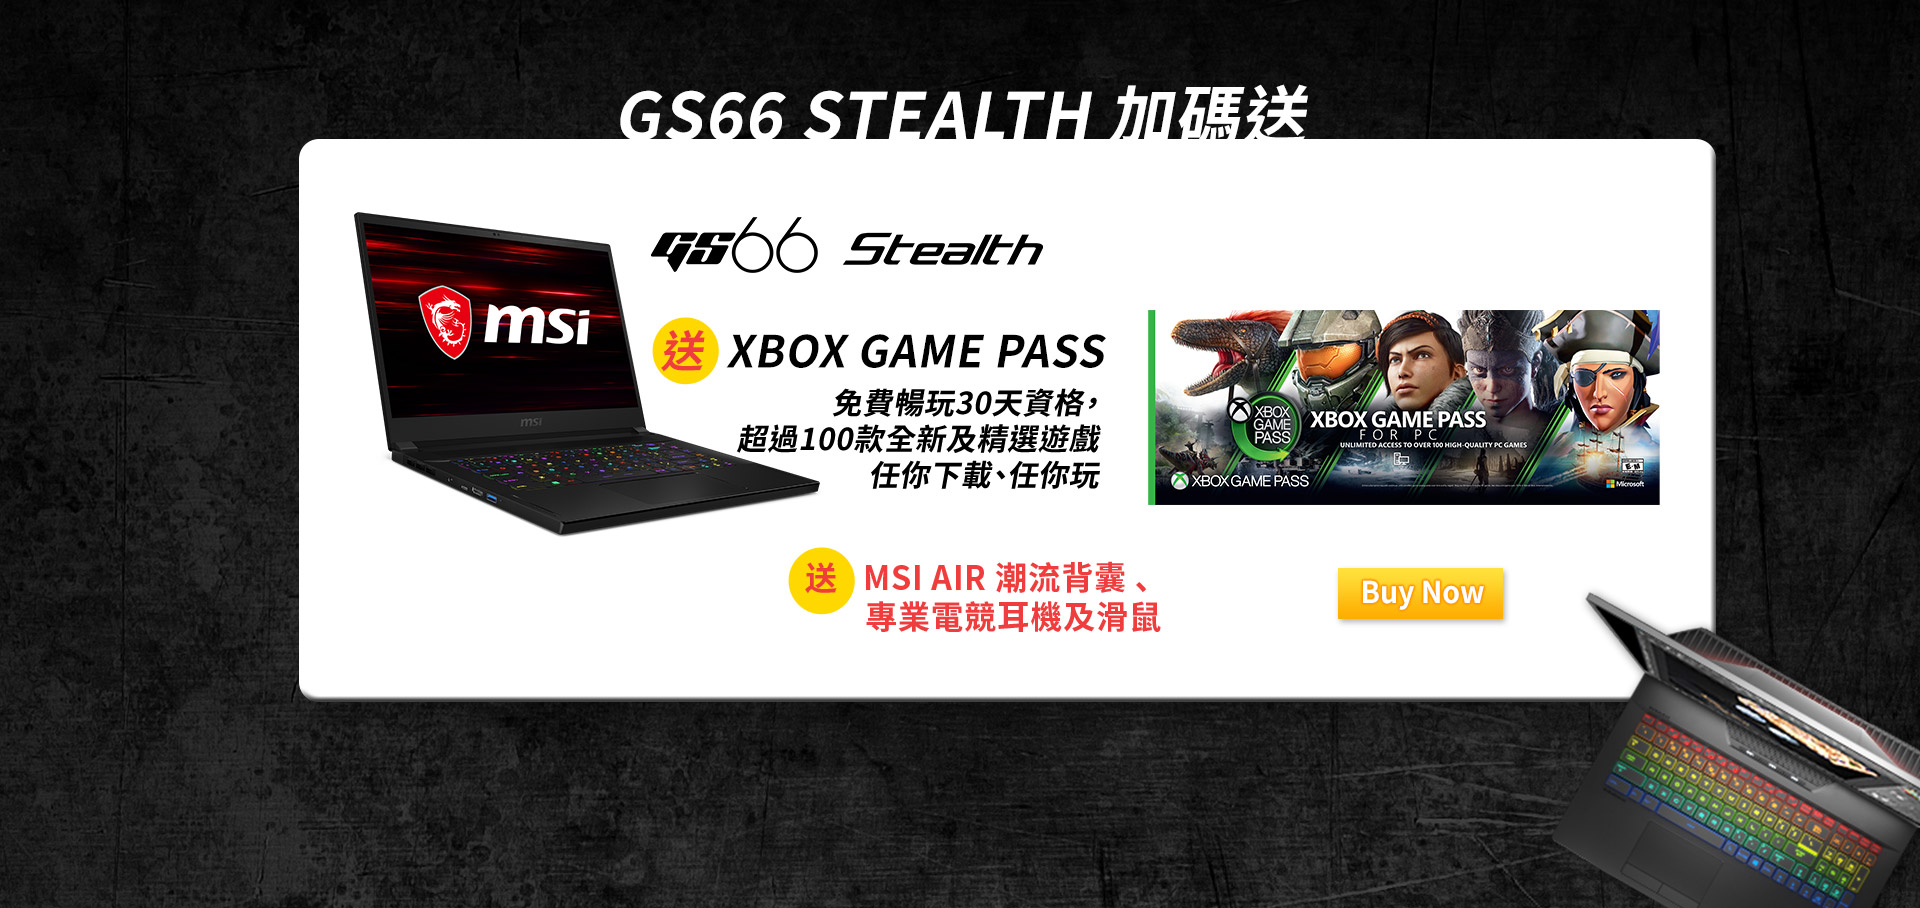 GS66 Stealth 加碼送